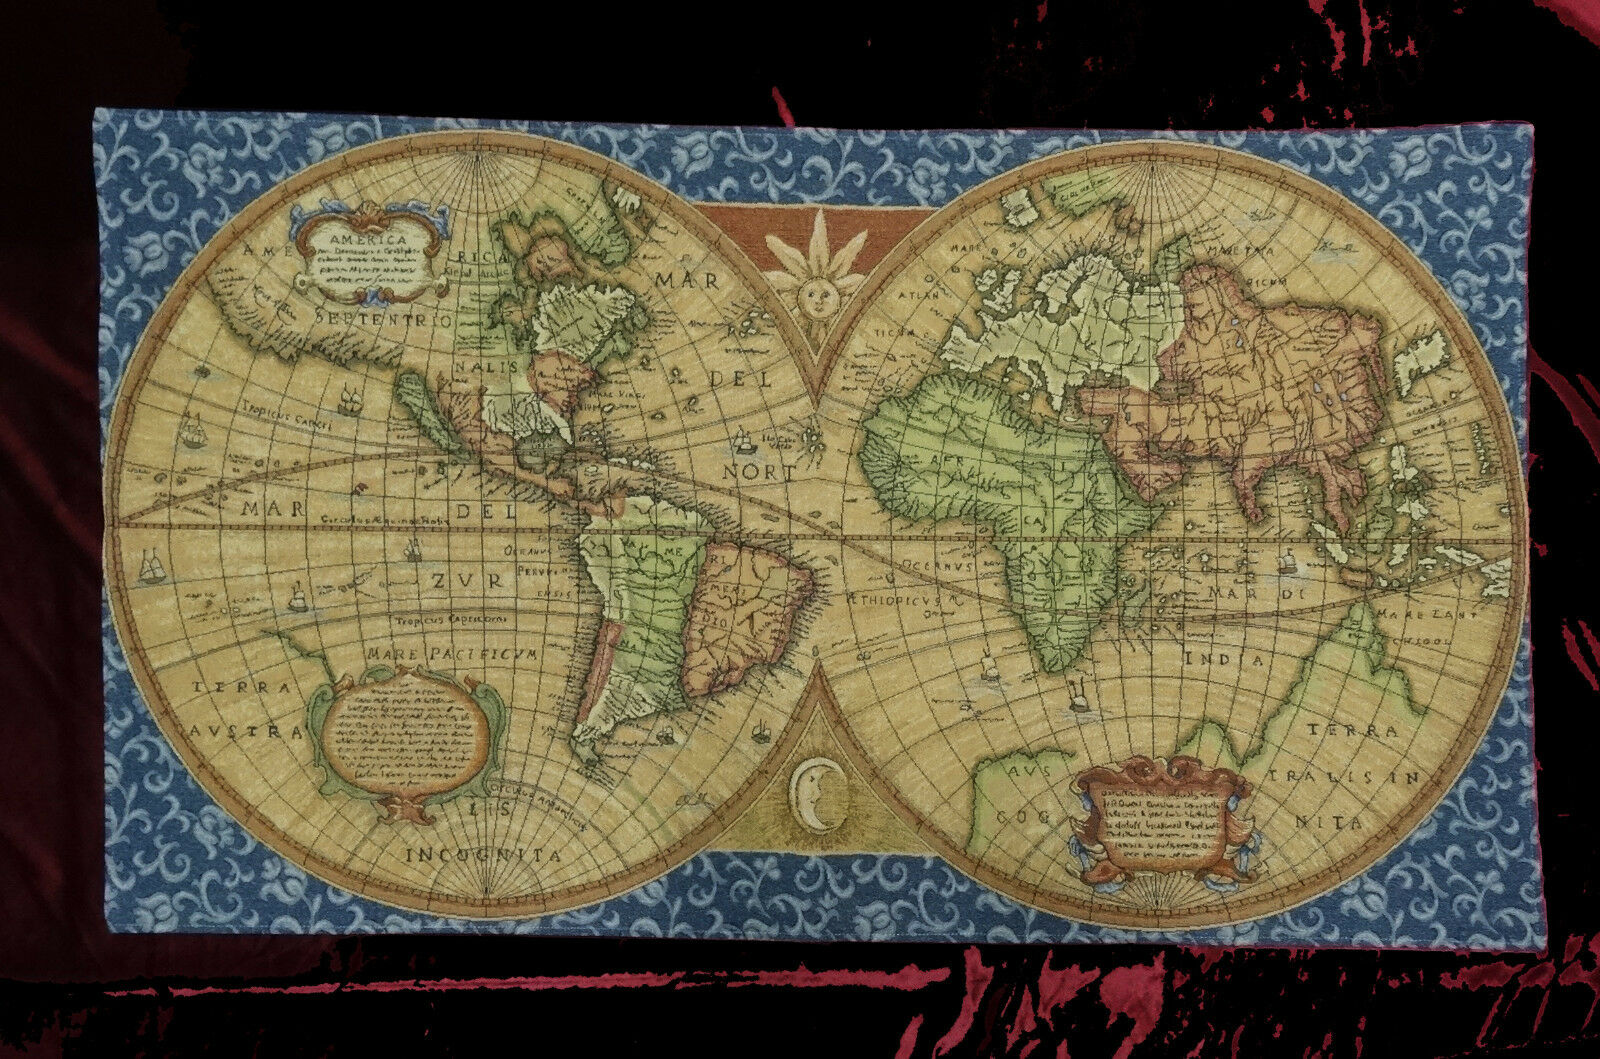 Wall carpet tapestry italy old map world atlas antique design blue wall decoration wall picture retro scene high quality replicas from upholstery fabric machine in a very complex web process and manufactured by hand gumiabroncs Gallery